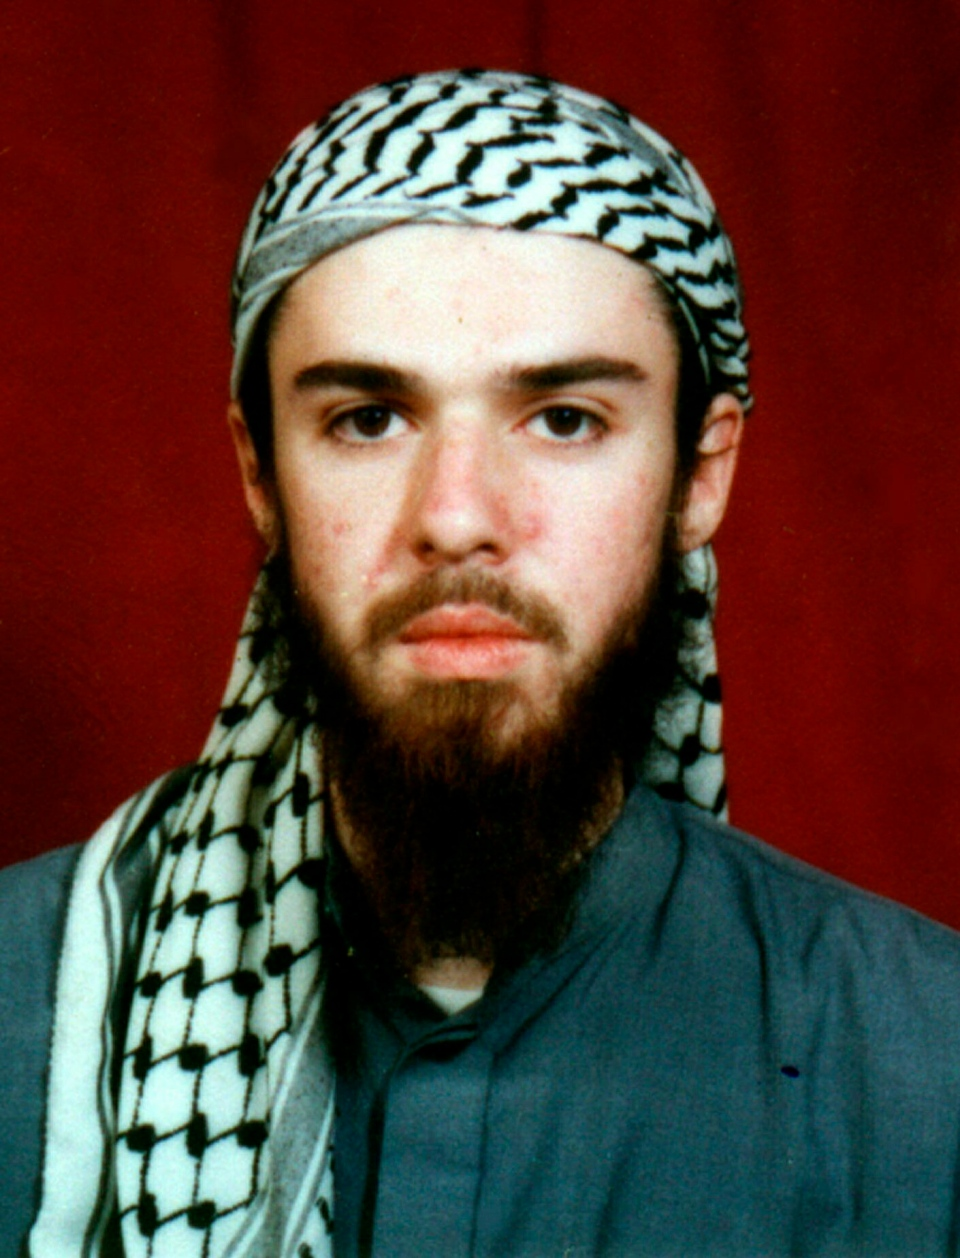 FILE - American John Walker Lindh is seen in this undated file photo obtained Tuesday, Jan. 22, 2002, from a religious school where he studied for five months in Bannu, 304 kilometers (190 miles) southwest of Islamabad, Pakistan. (AP Photo, File)